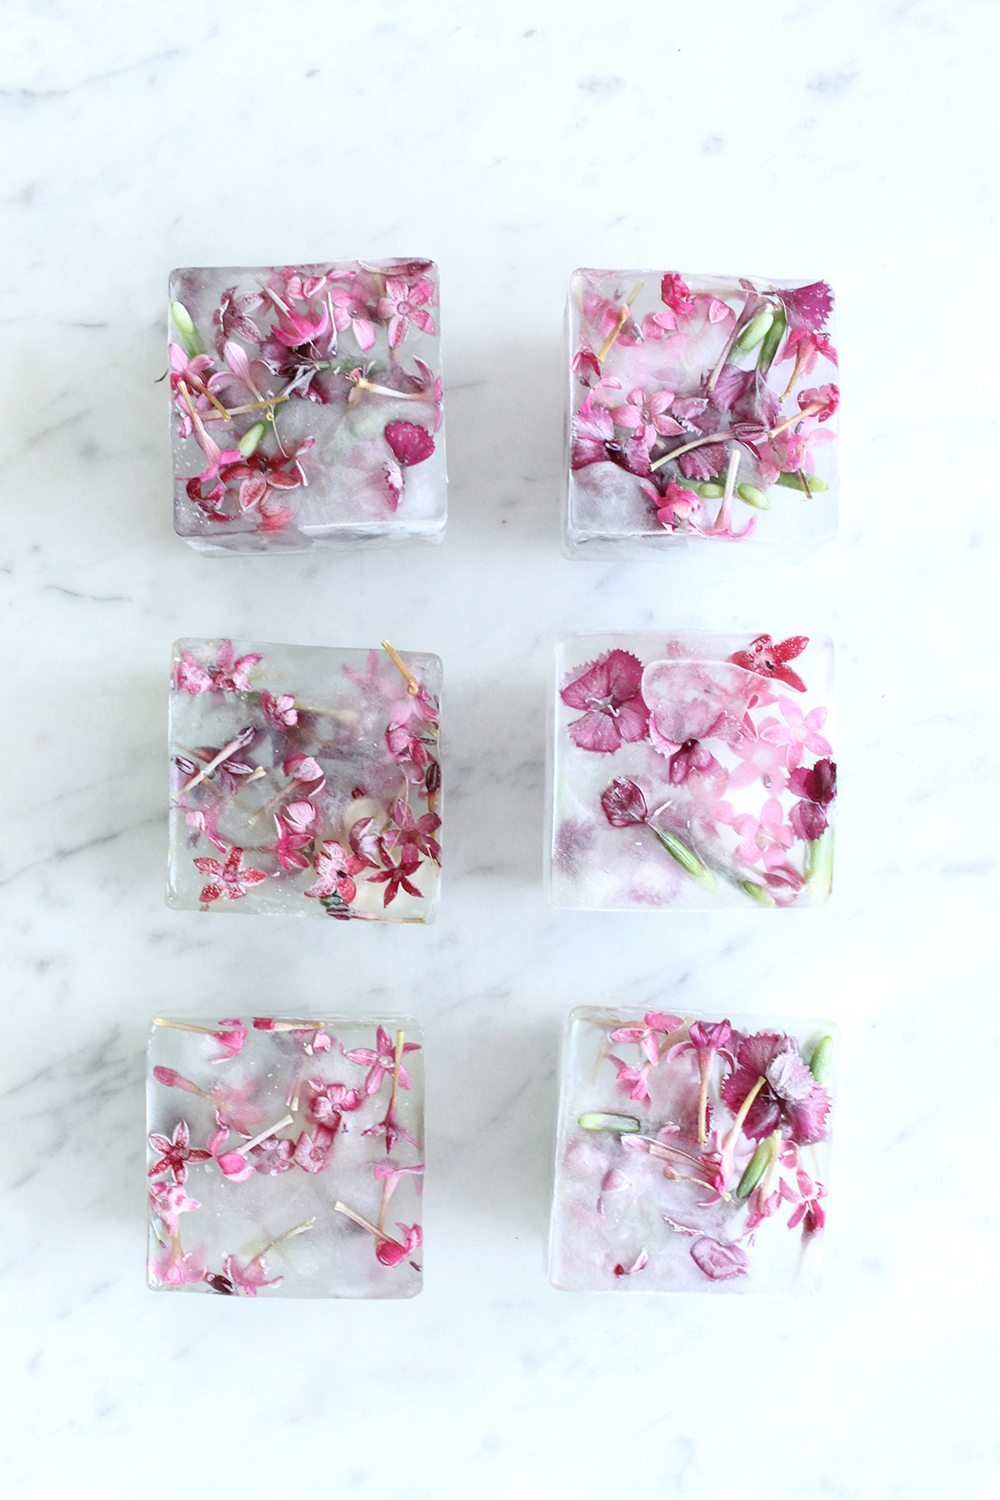 10 Unexpectedly Refreshing Ways to Dress Up Your Ice Cubes for Summer